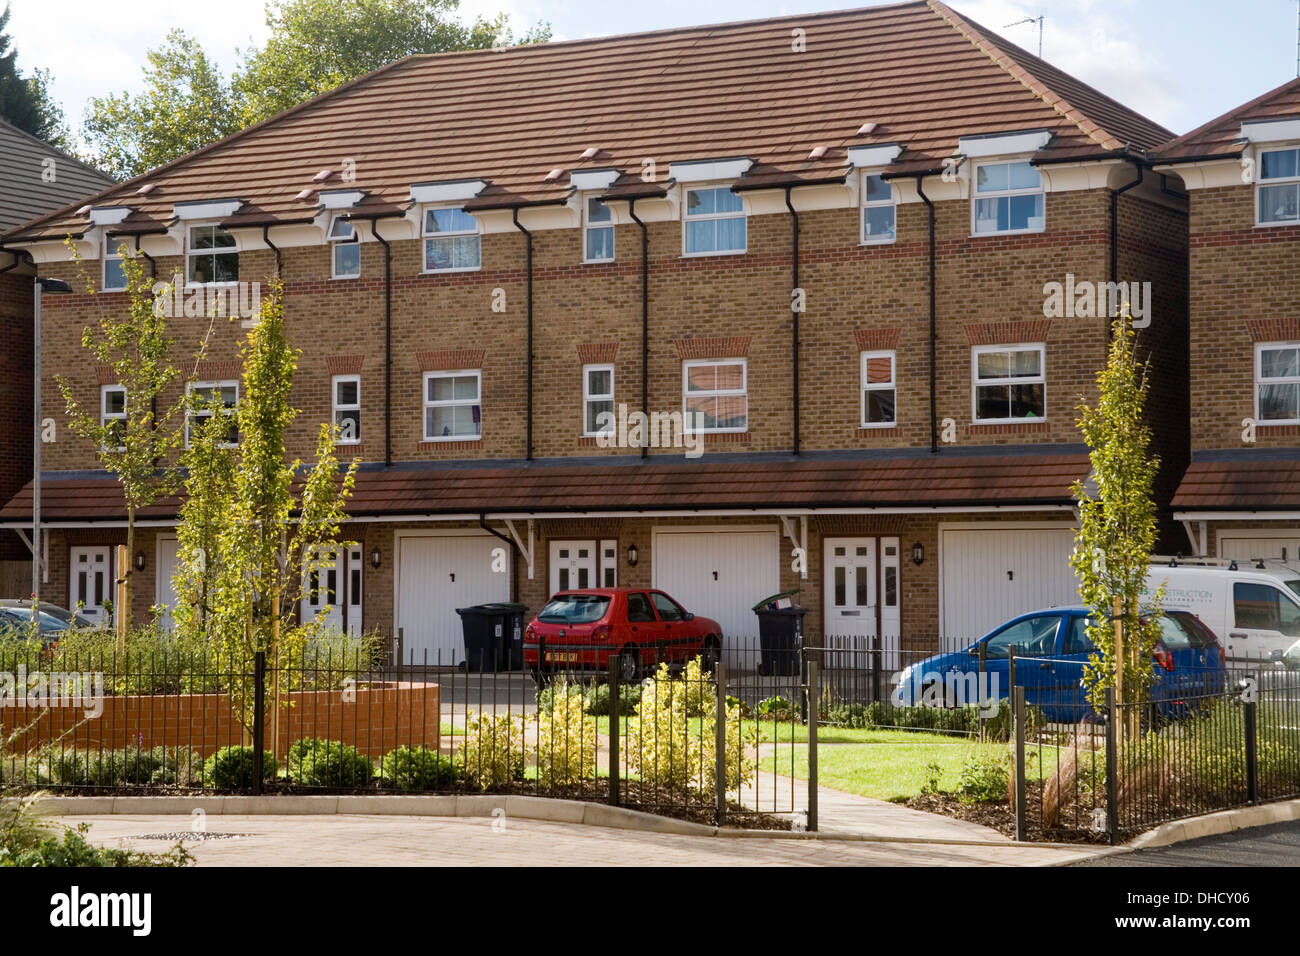 New affordable energy efficient homes in London - Stock Image